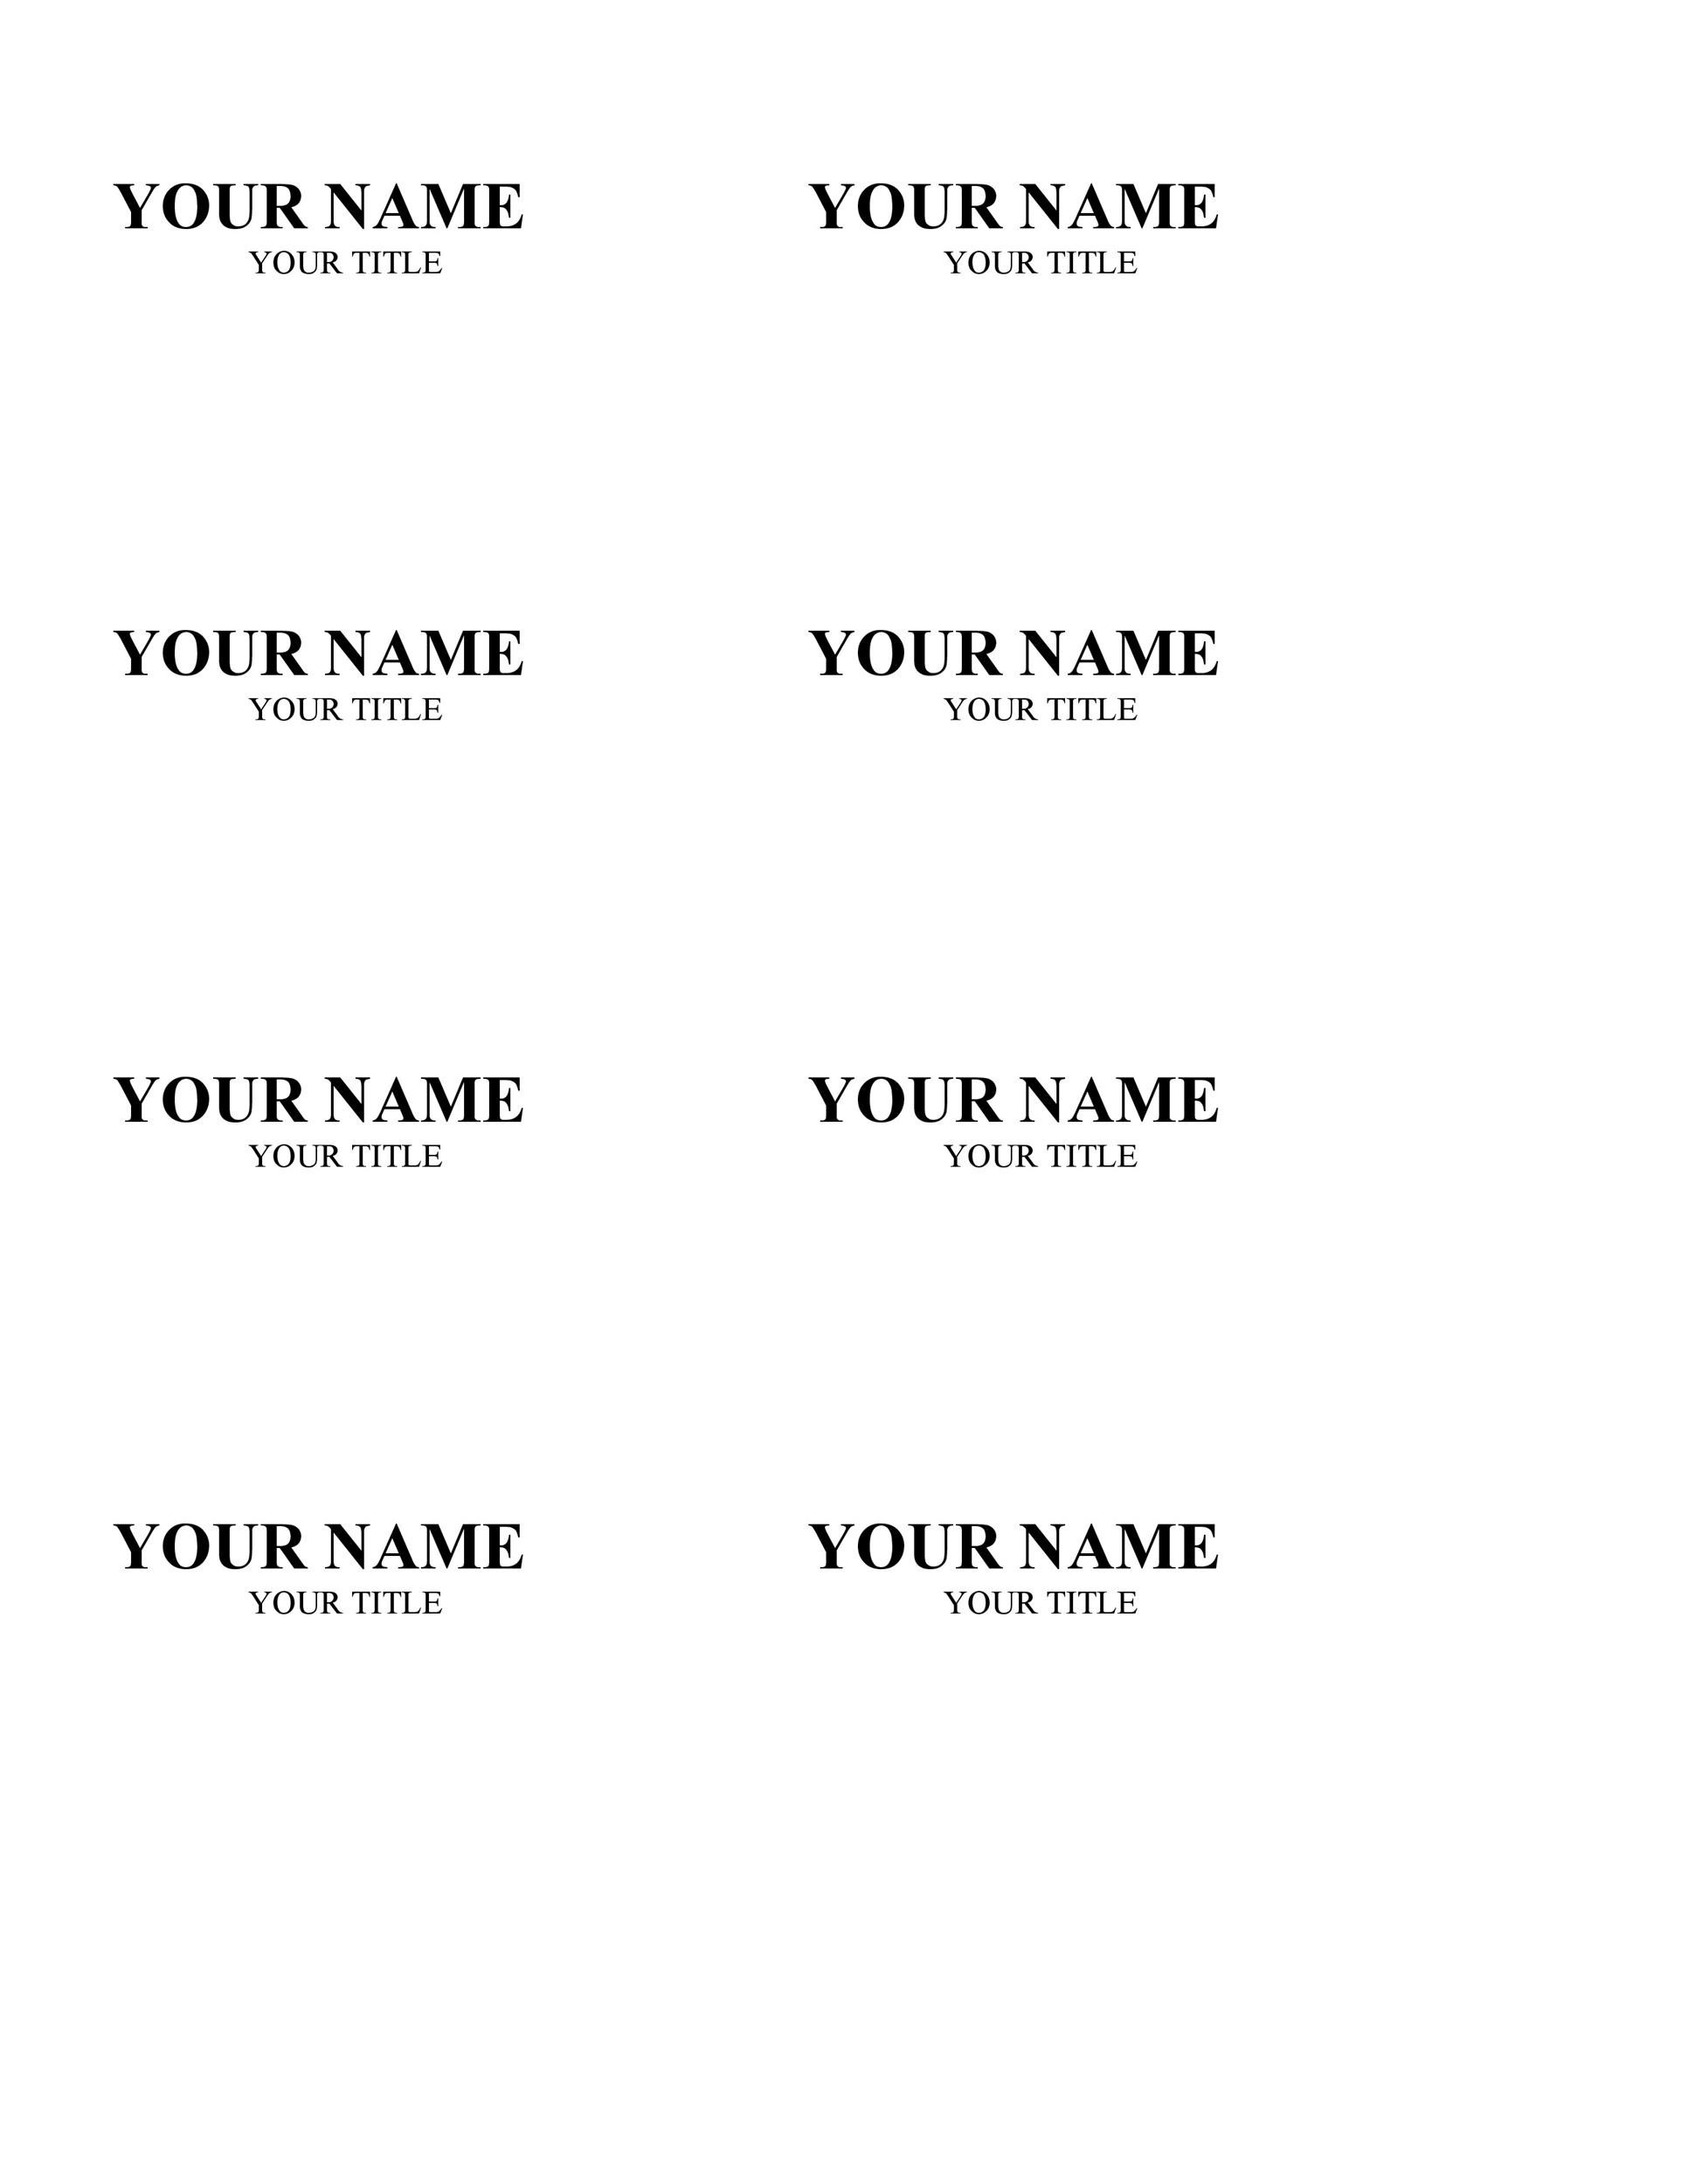 Free name tag template 03